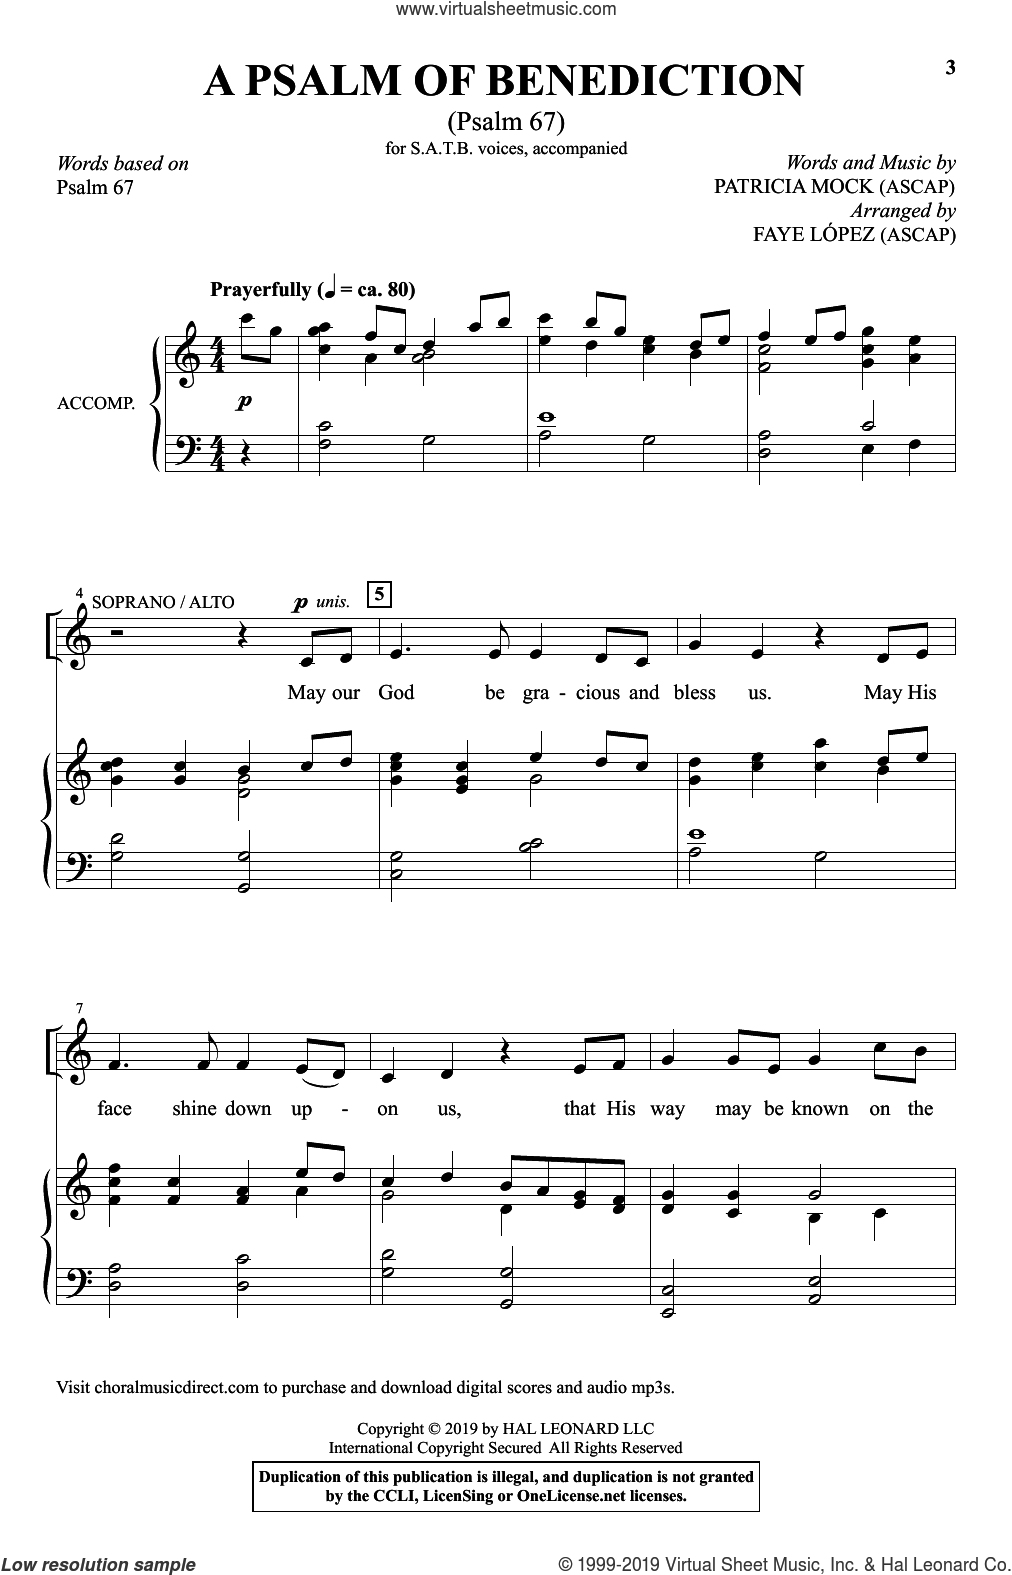 A Psalm Of Benediction (Psalm 67) (arr. Faye Lopez) sheet music for choir (SATB: soprano, alto, tenor, bass) by Patricia Mock and Faye Lopez, intermediate skill level